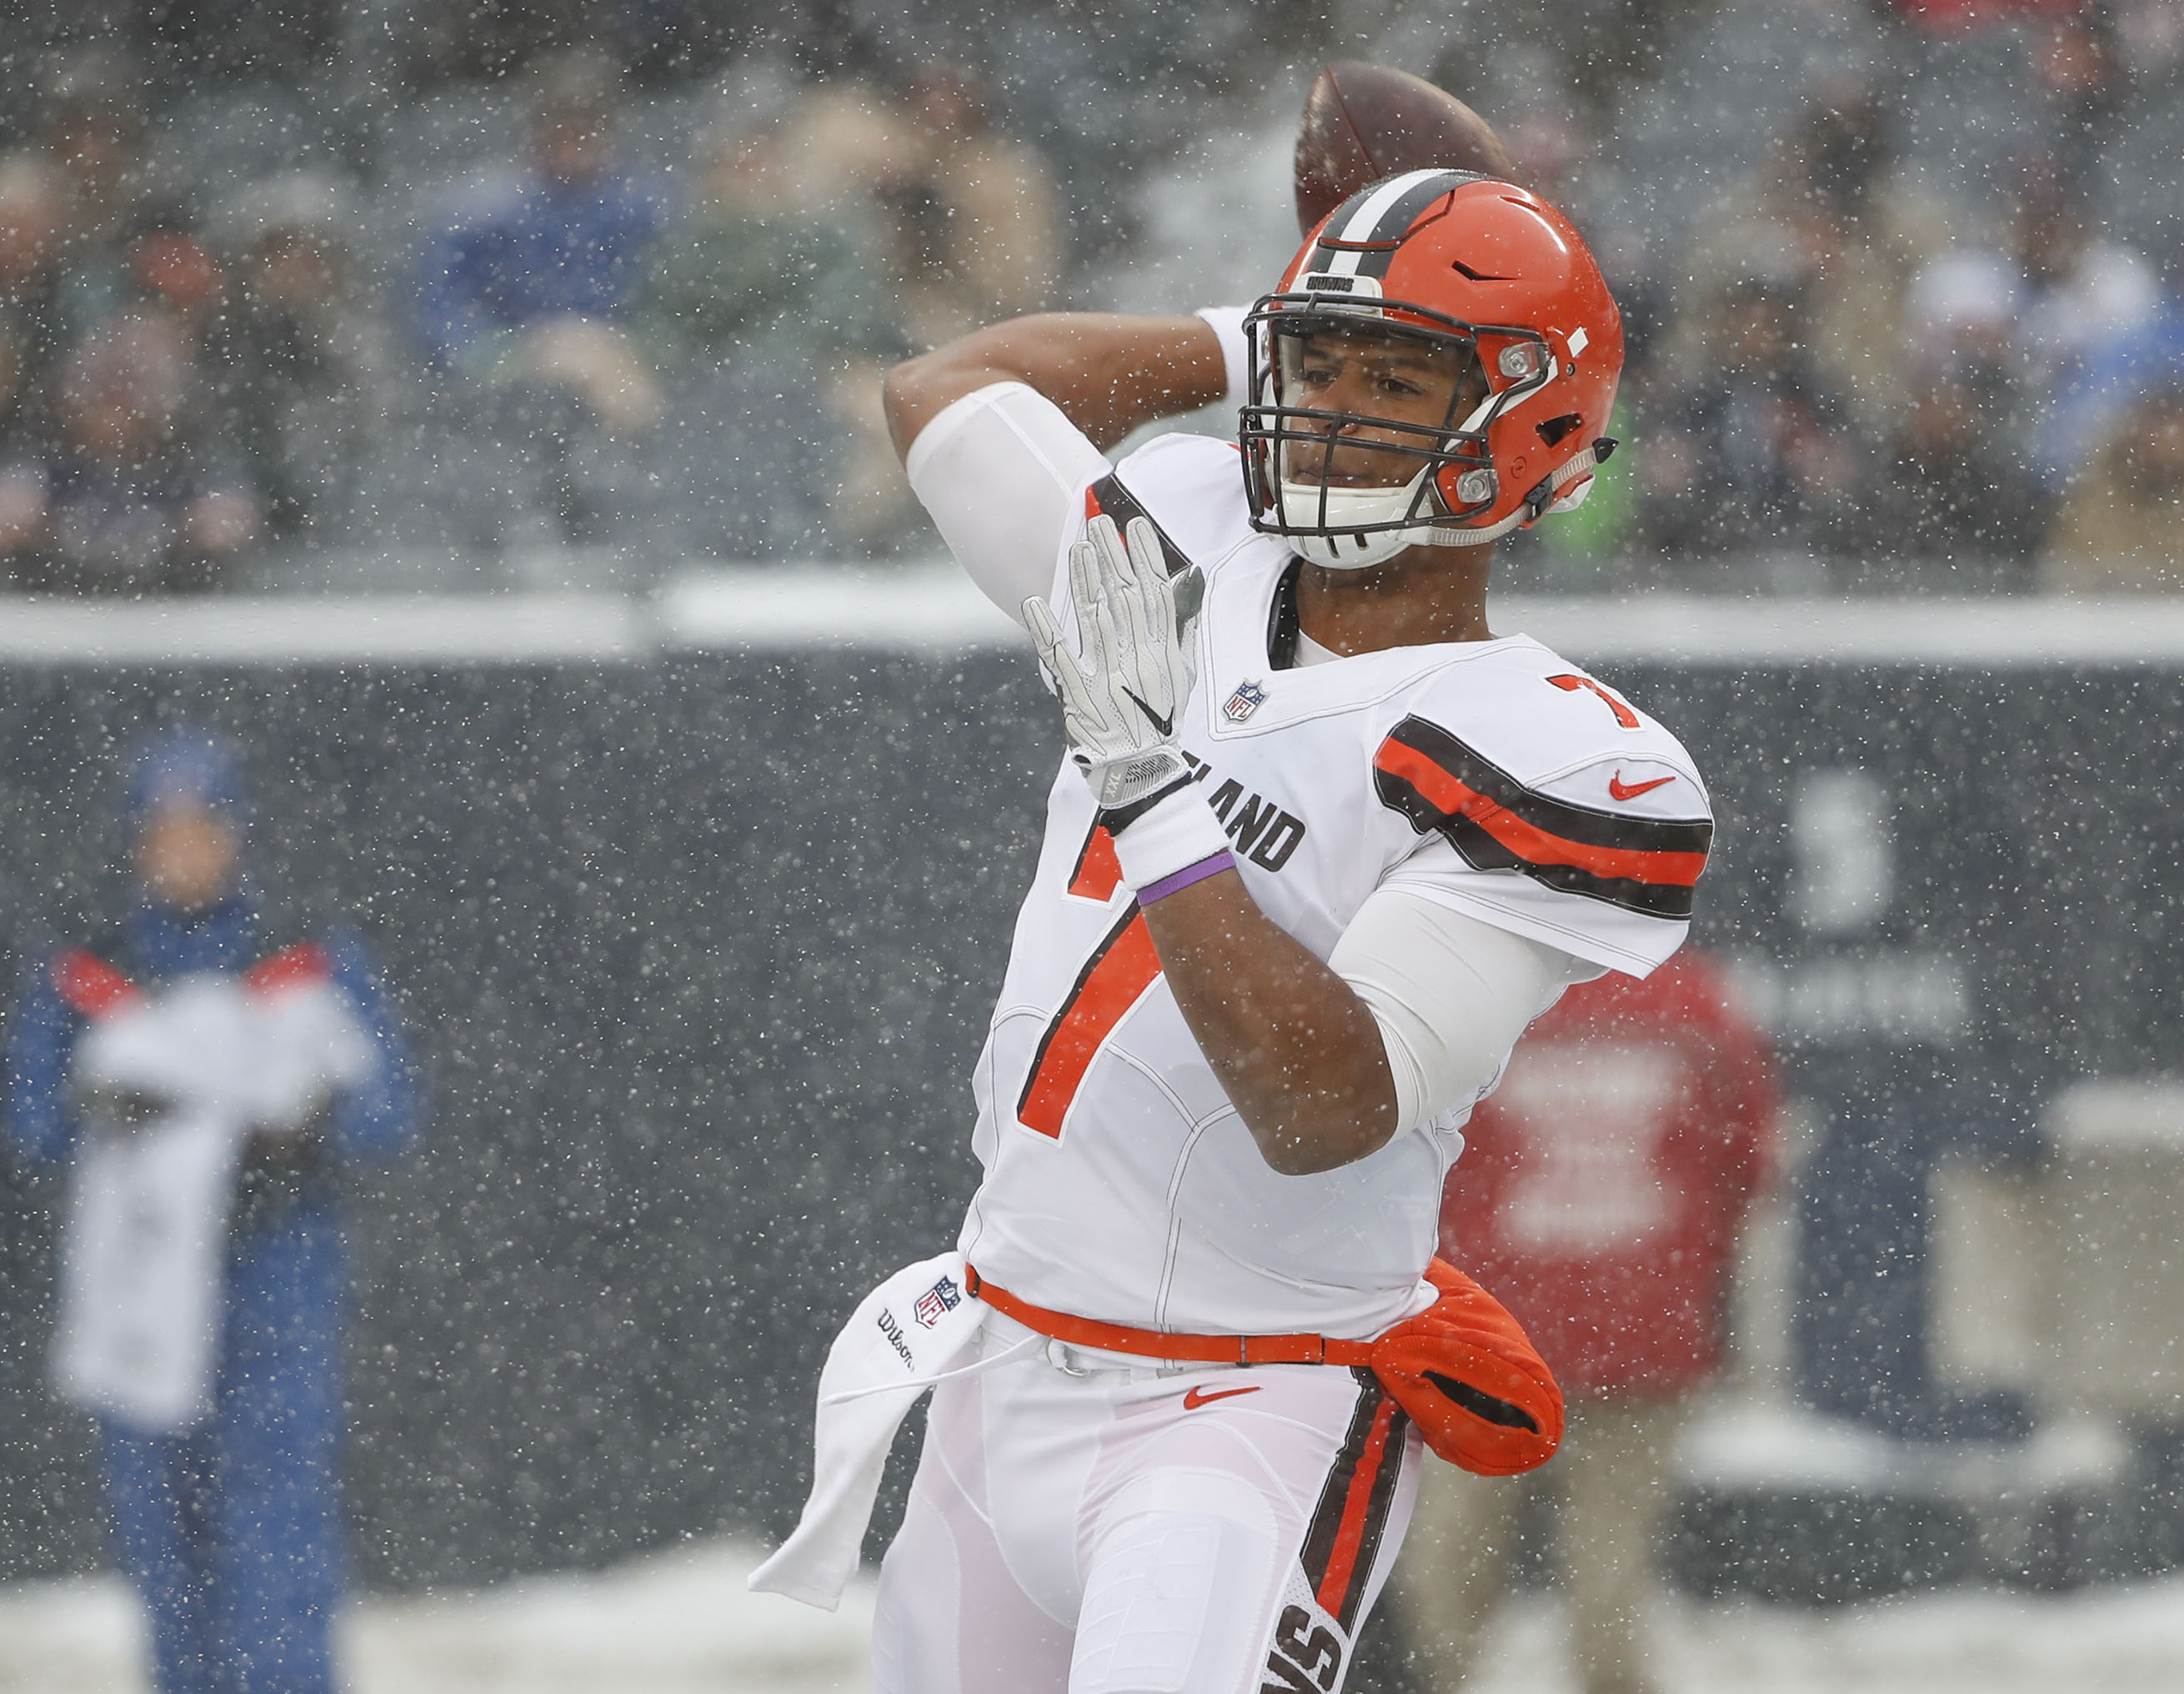 Browns drop chance to avoid 0-16, lose to Steelers 28-24